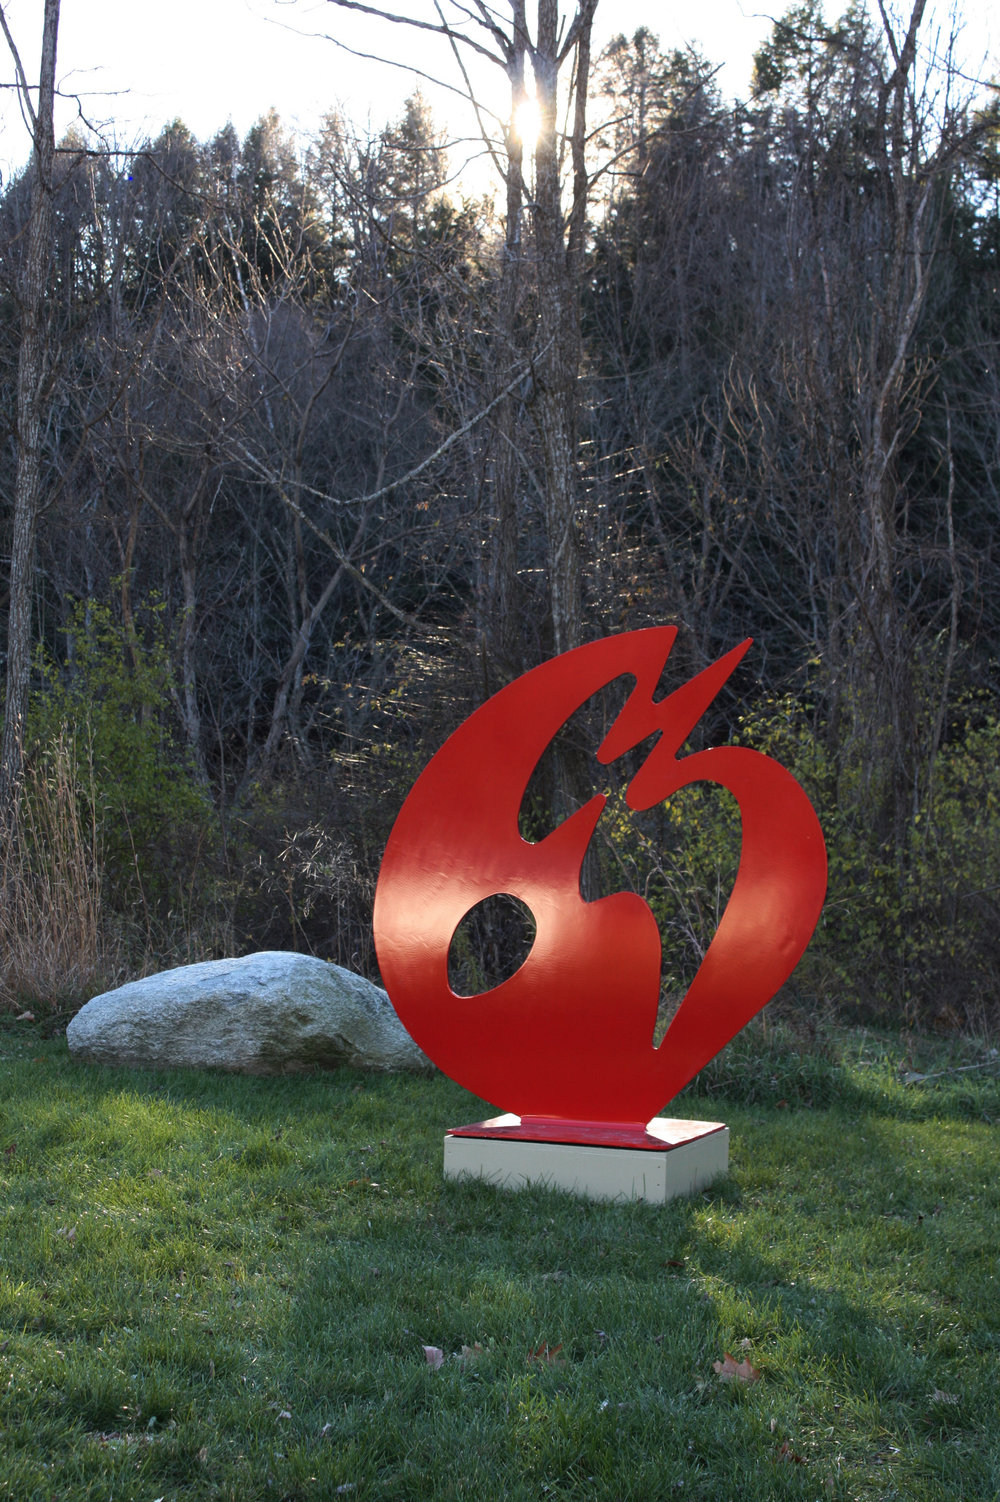 Time Arrow   2004, painted aluminum, 5.5x5.25 ft  Health Care and Rehabilitation Center Springfield, Vermont